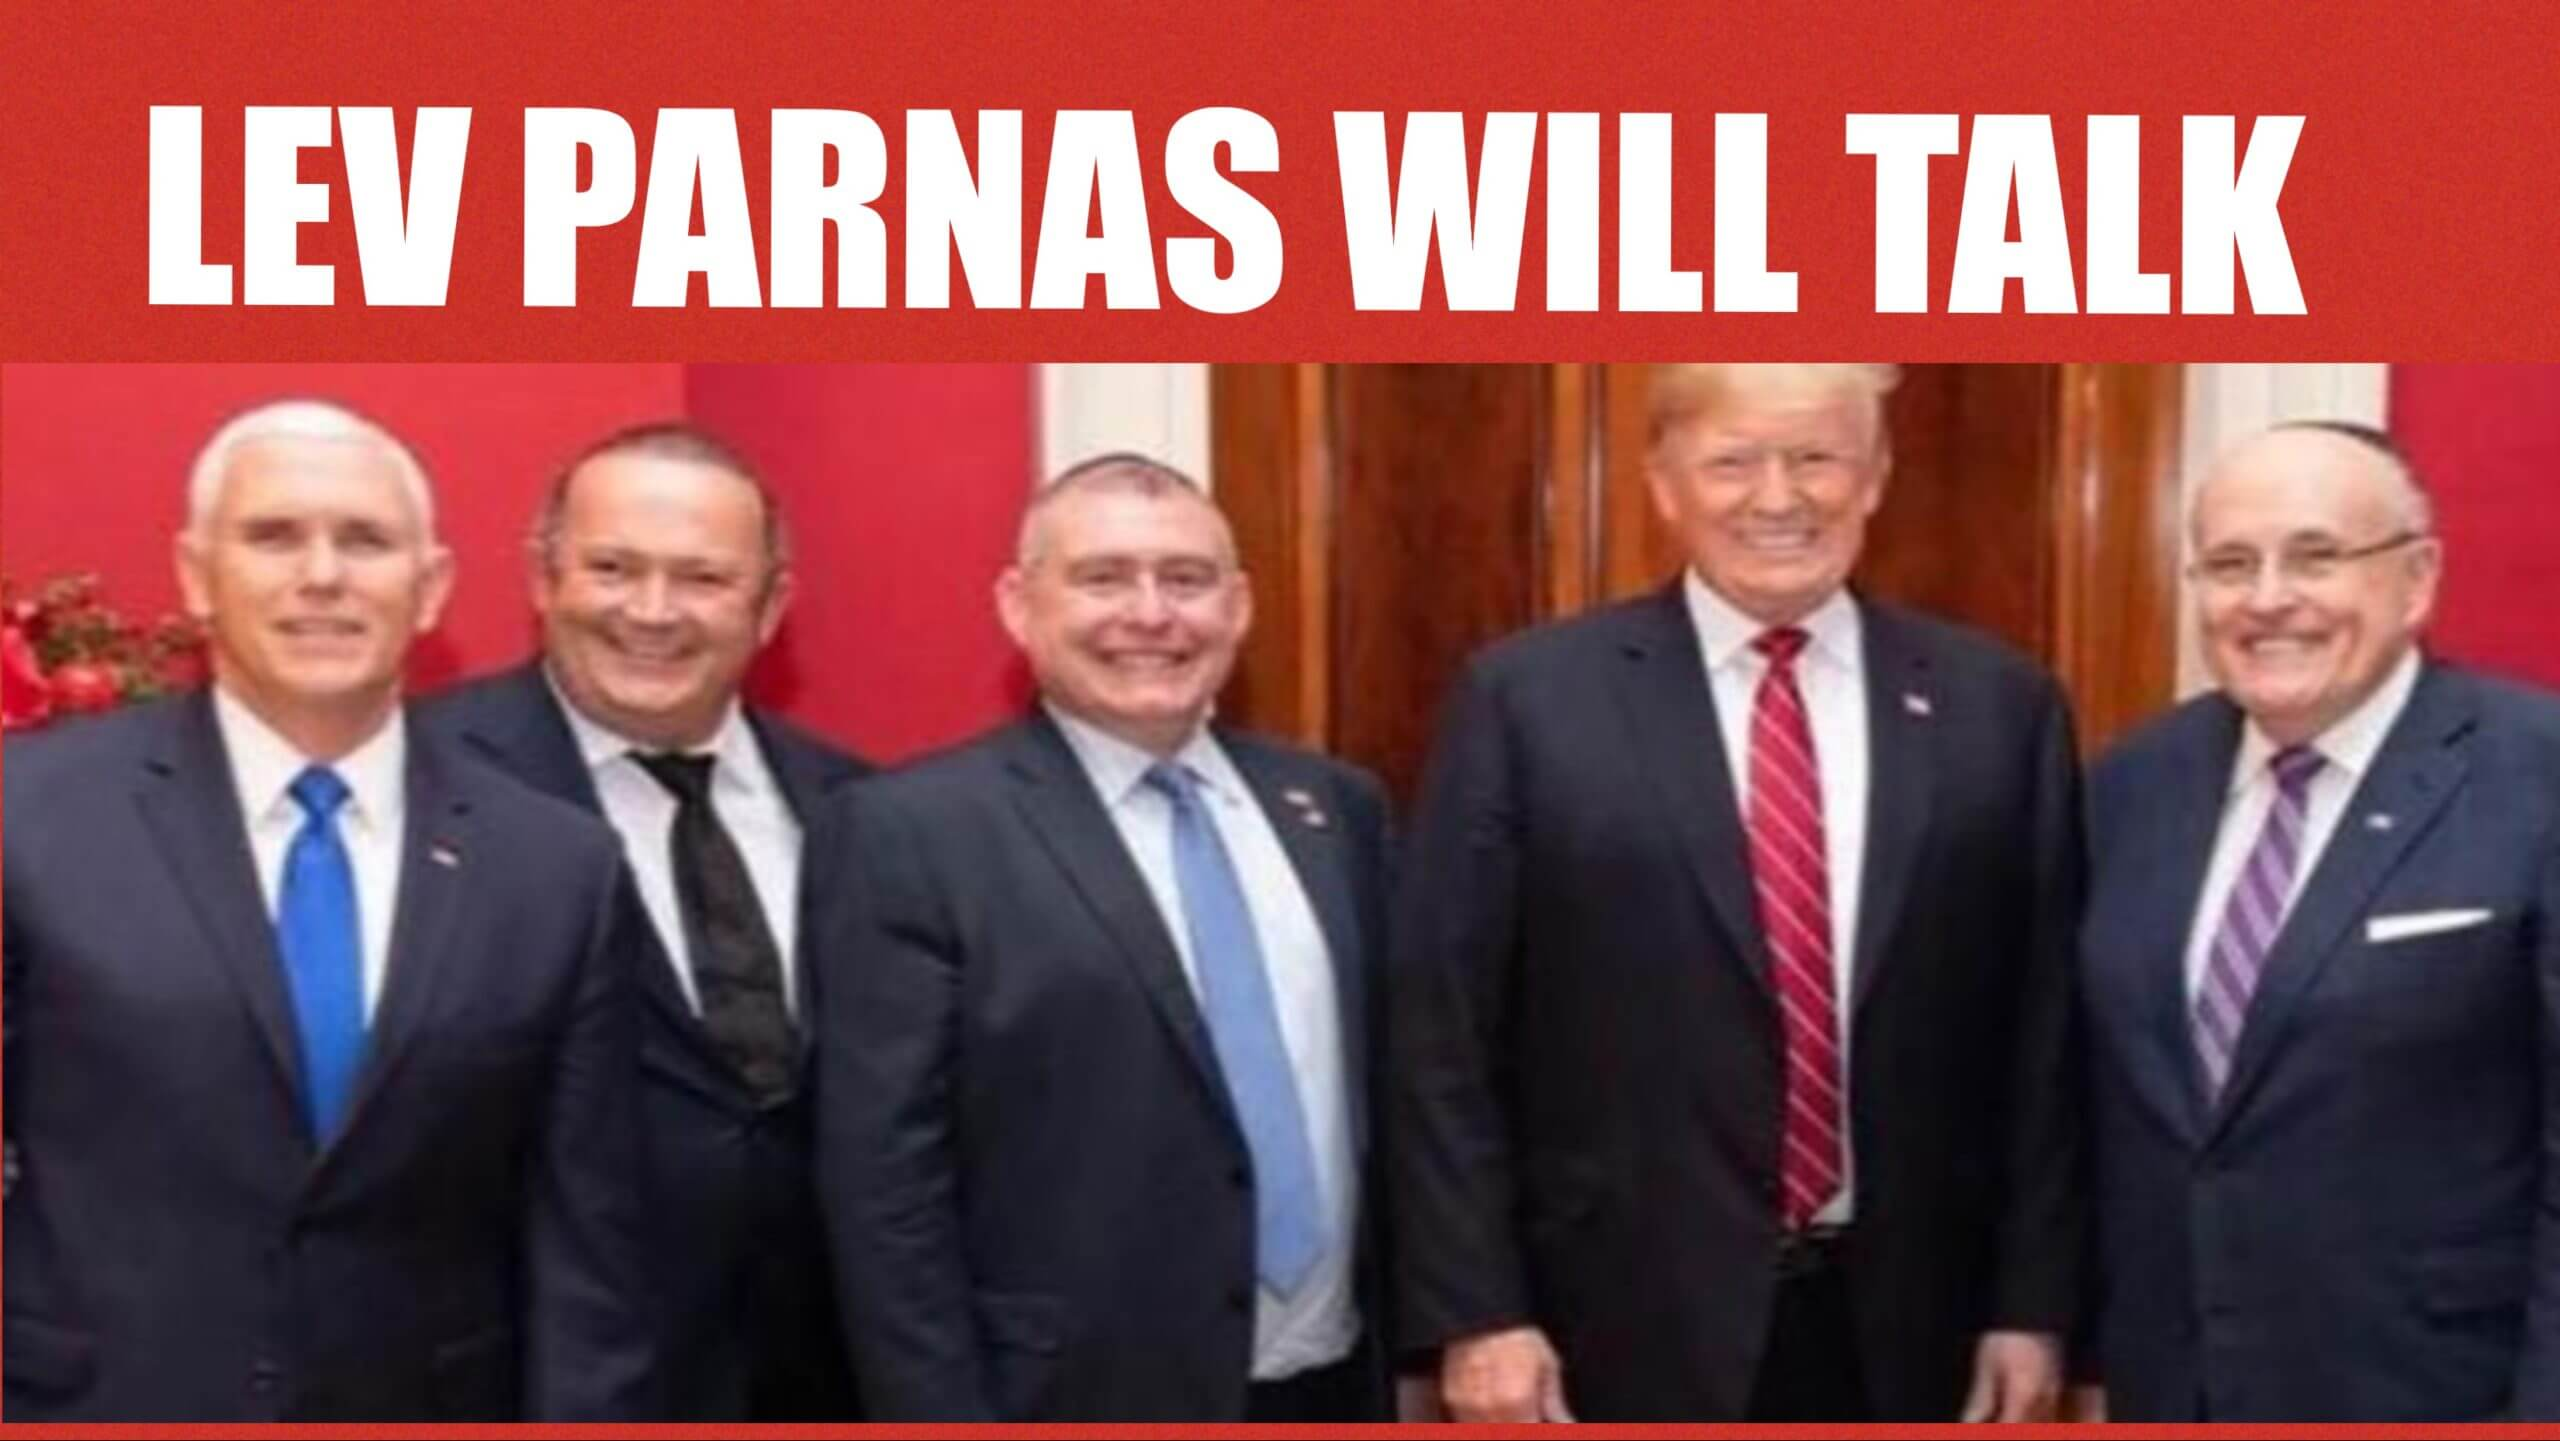 """Guiliani associate Parnas willing to testify in impeachment proceedings with """"hard evidence"""""""